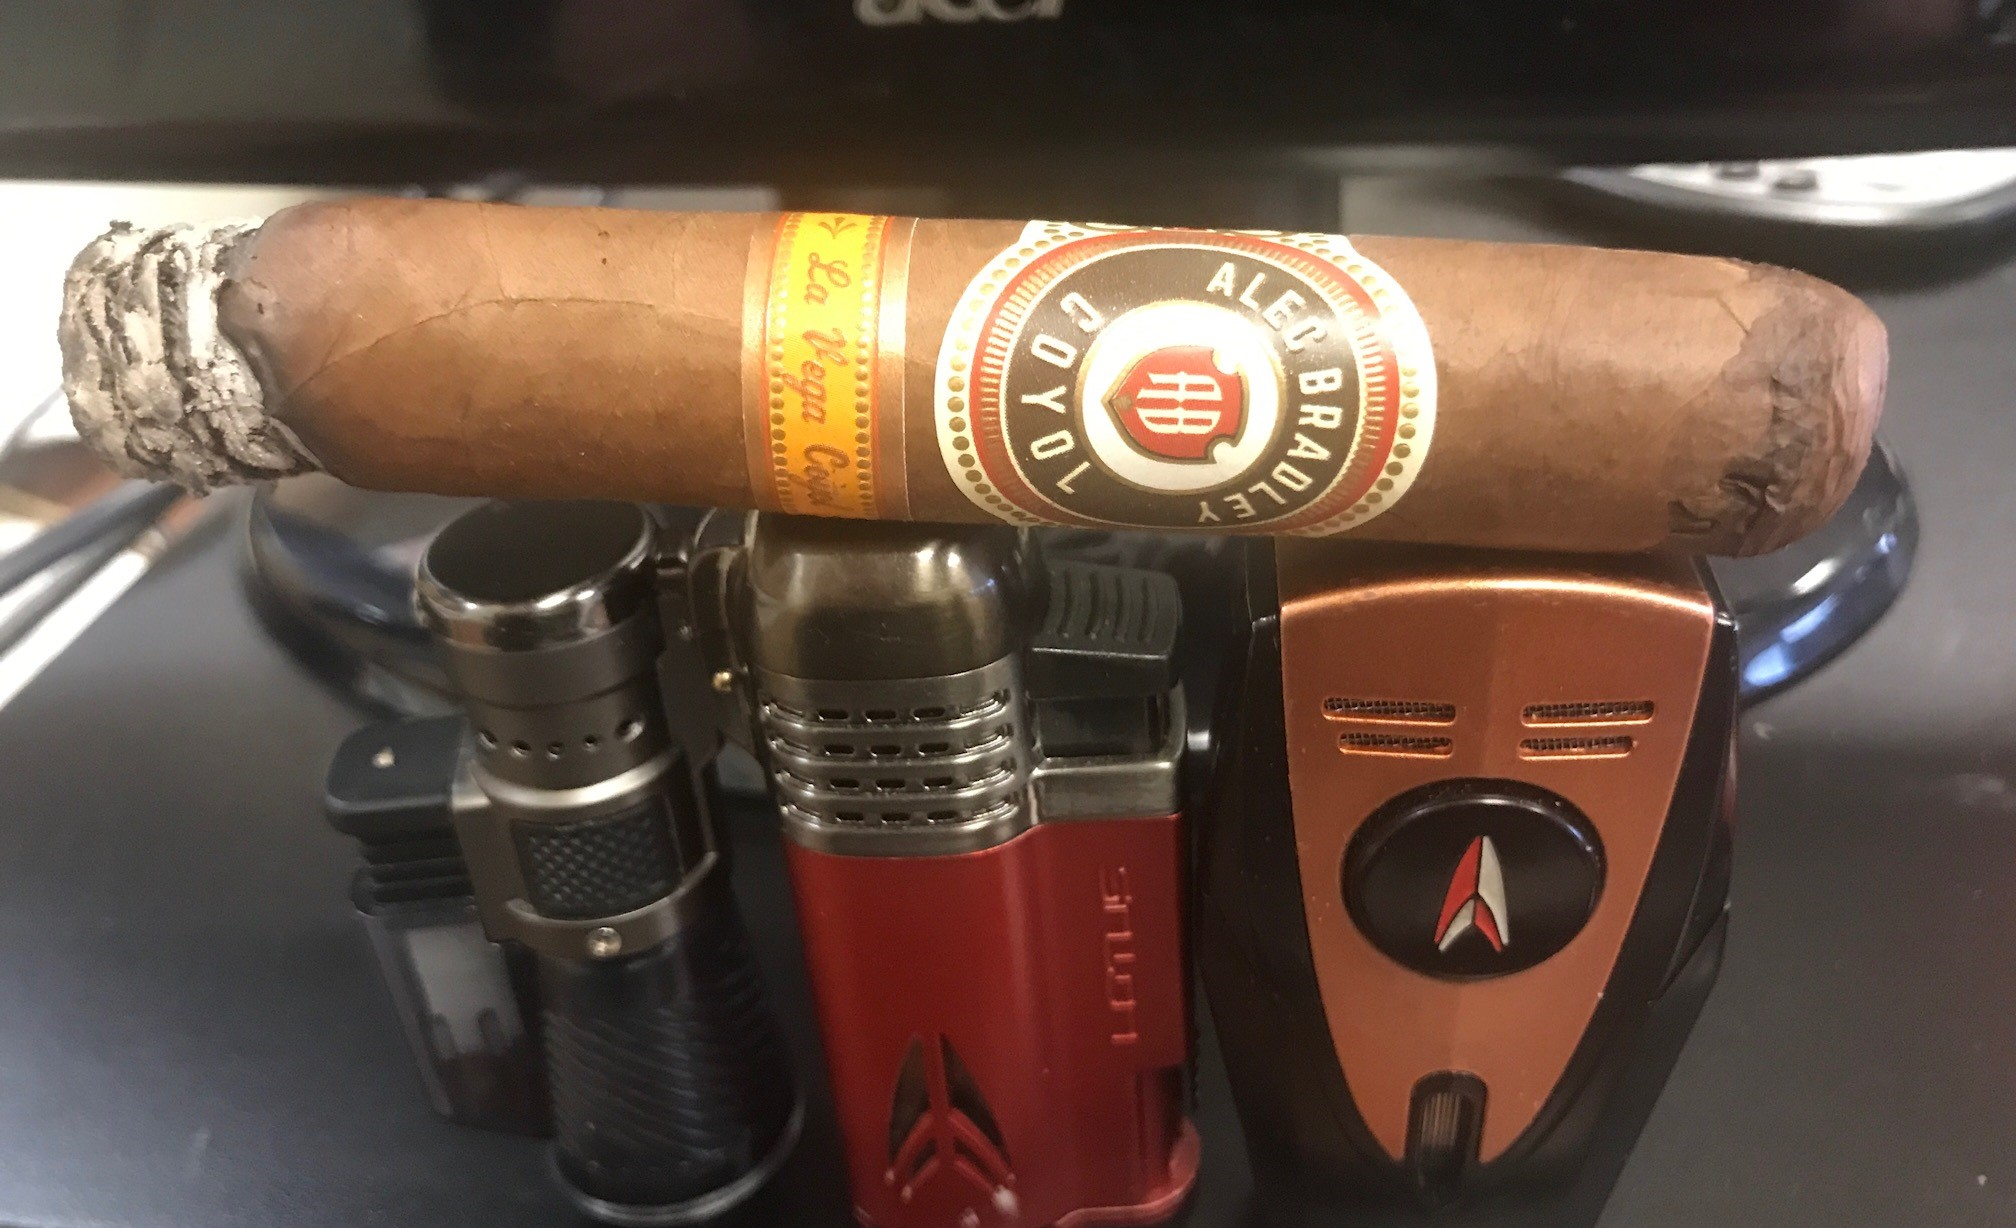 Alec Bradley cigars guide Alec Bradley Coyol Robusto cigar review by Tommy Zman